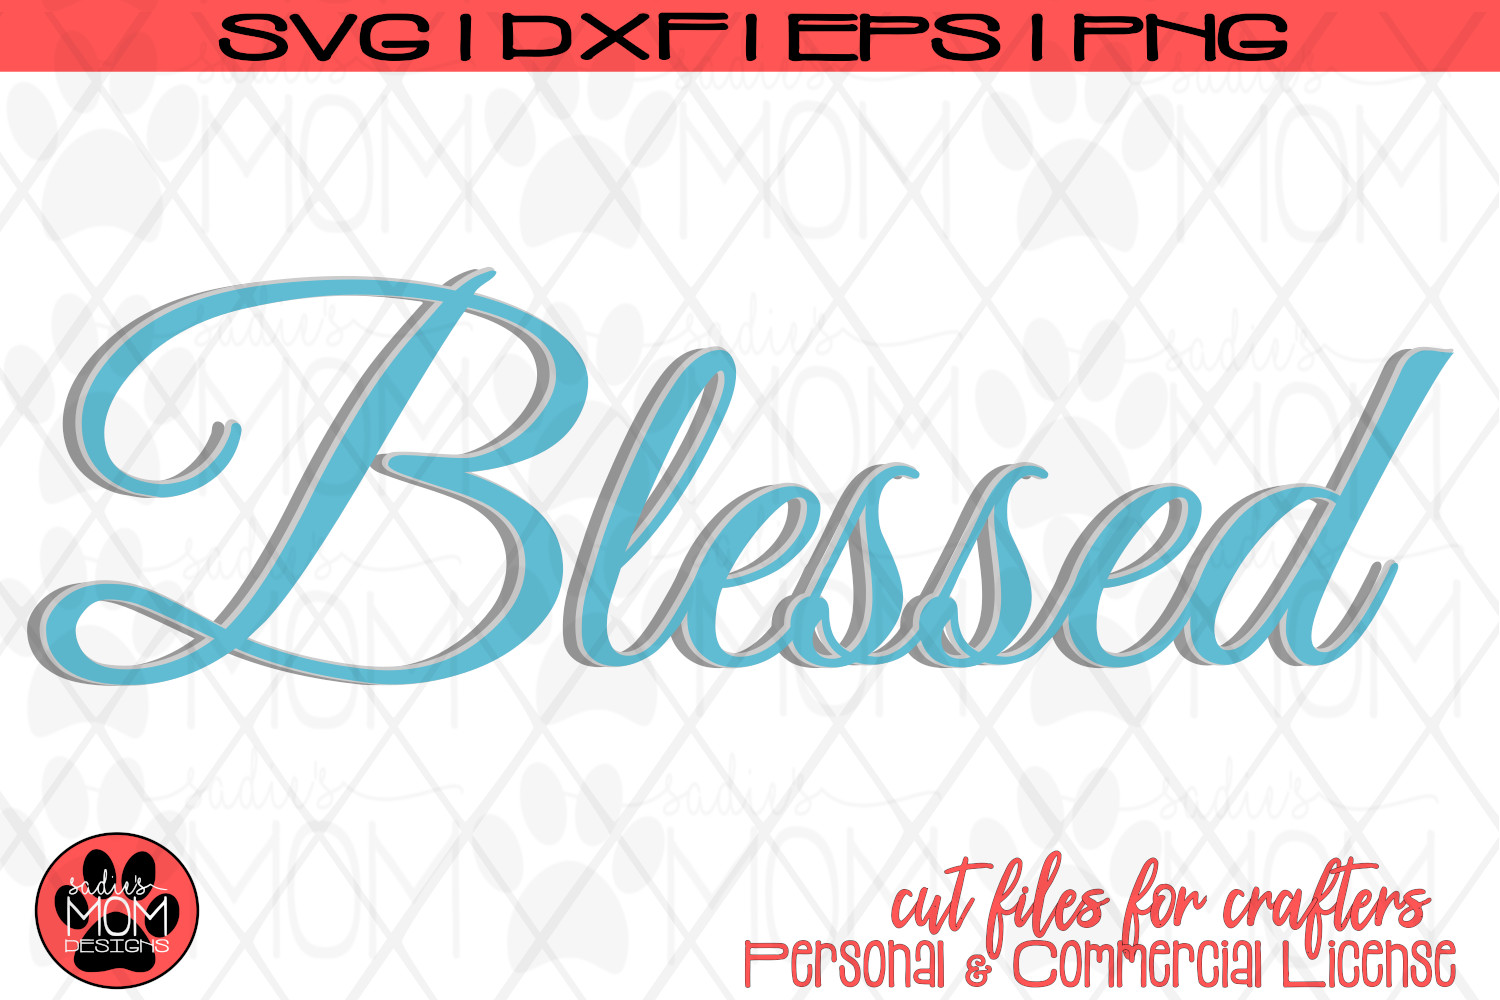 Blessed - Layered Blessed Design | SVG Cut File example image 2